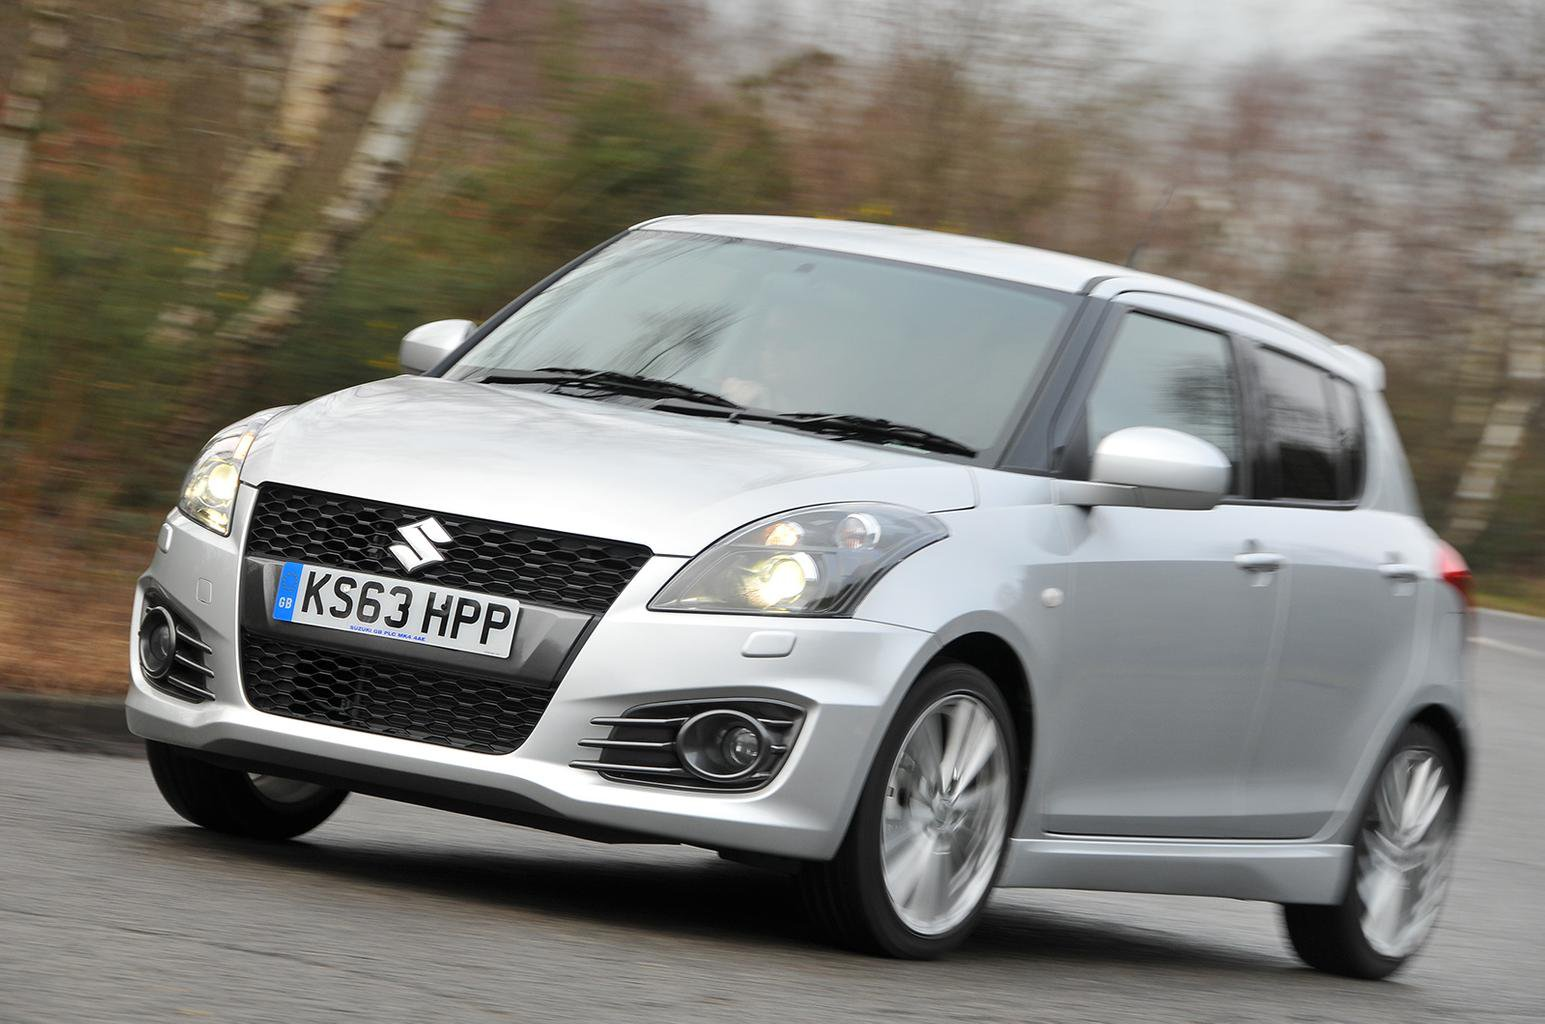 Best used hot hatches (and the ones to avoid)